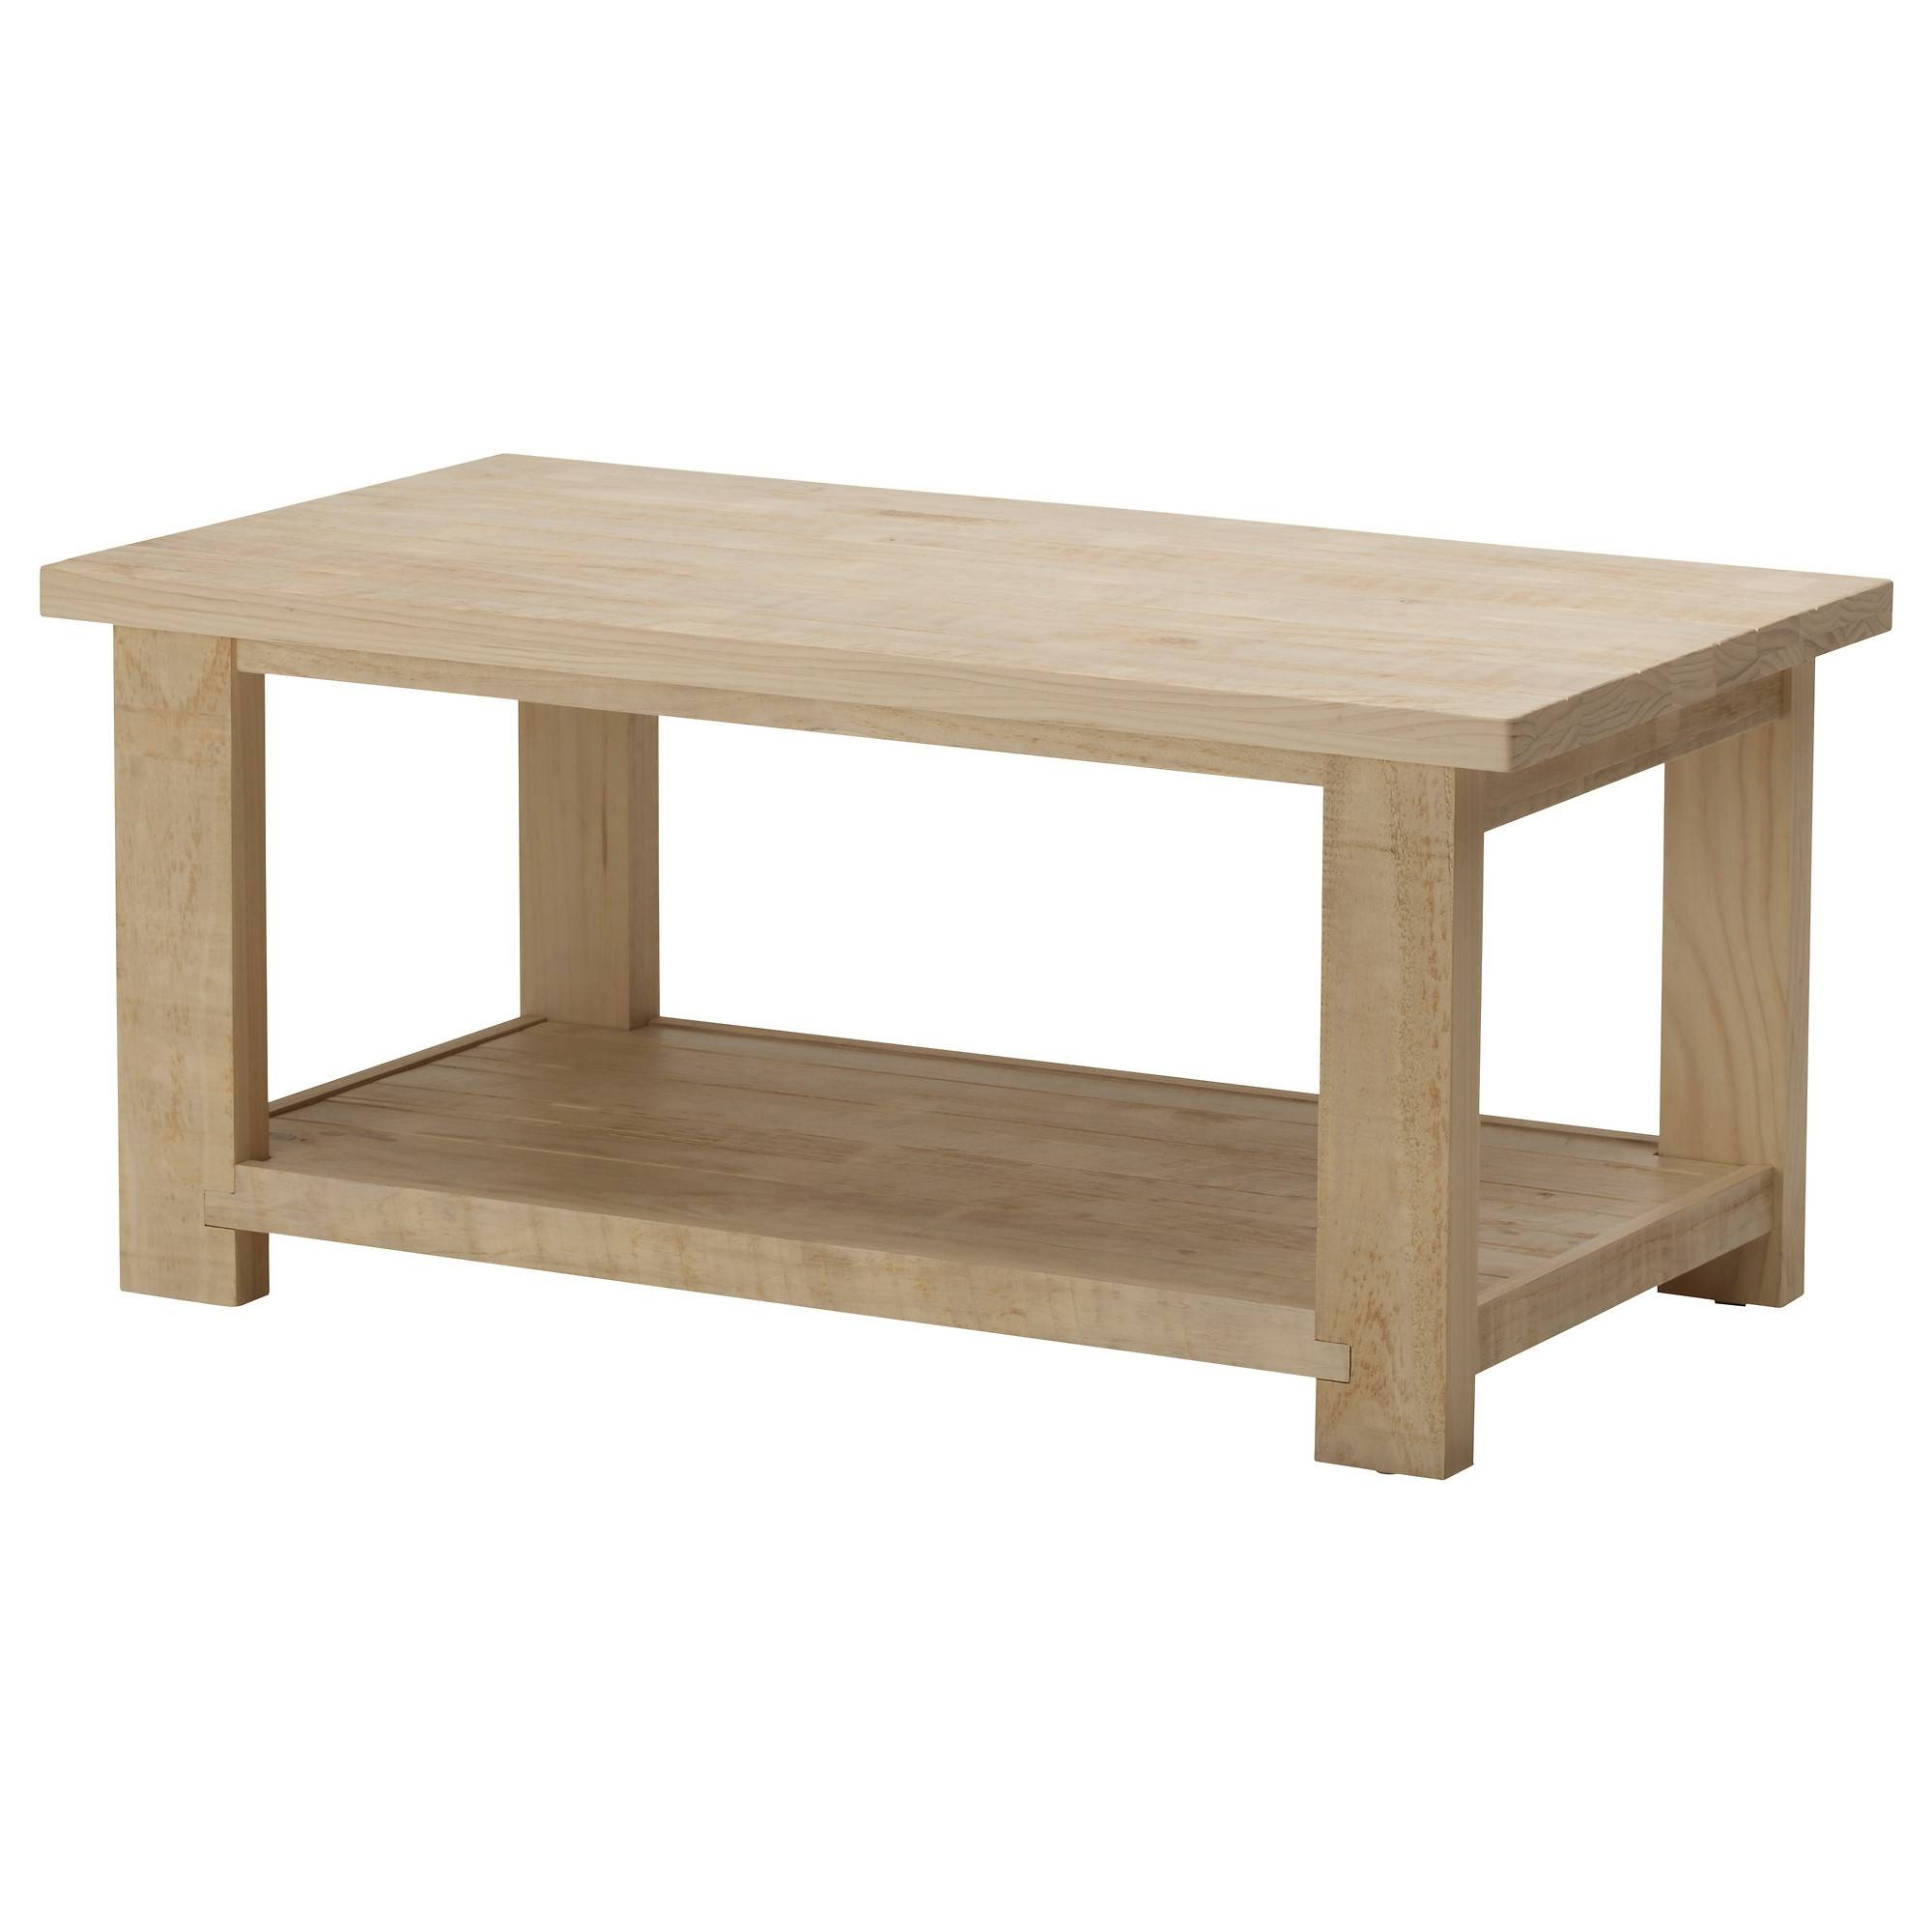 Coffee Tables Ideas: Best Wooden Coffee Tables With Storage inside Wooden Coffee Tables (Image 3 of 15)